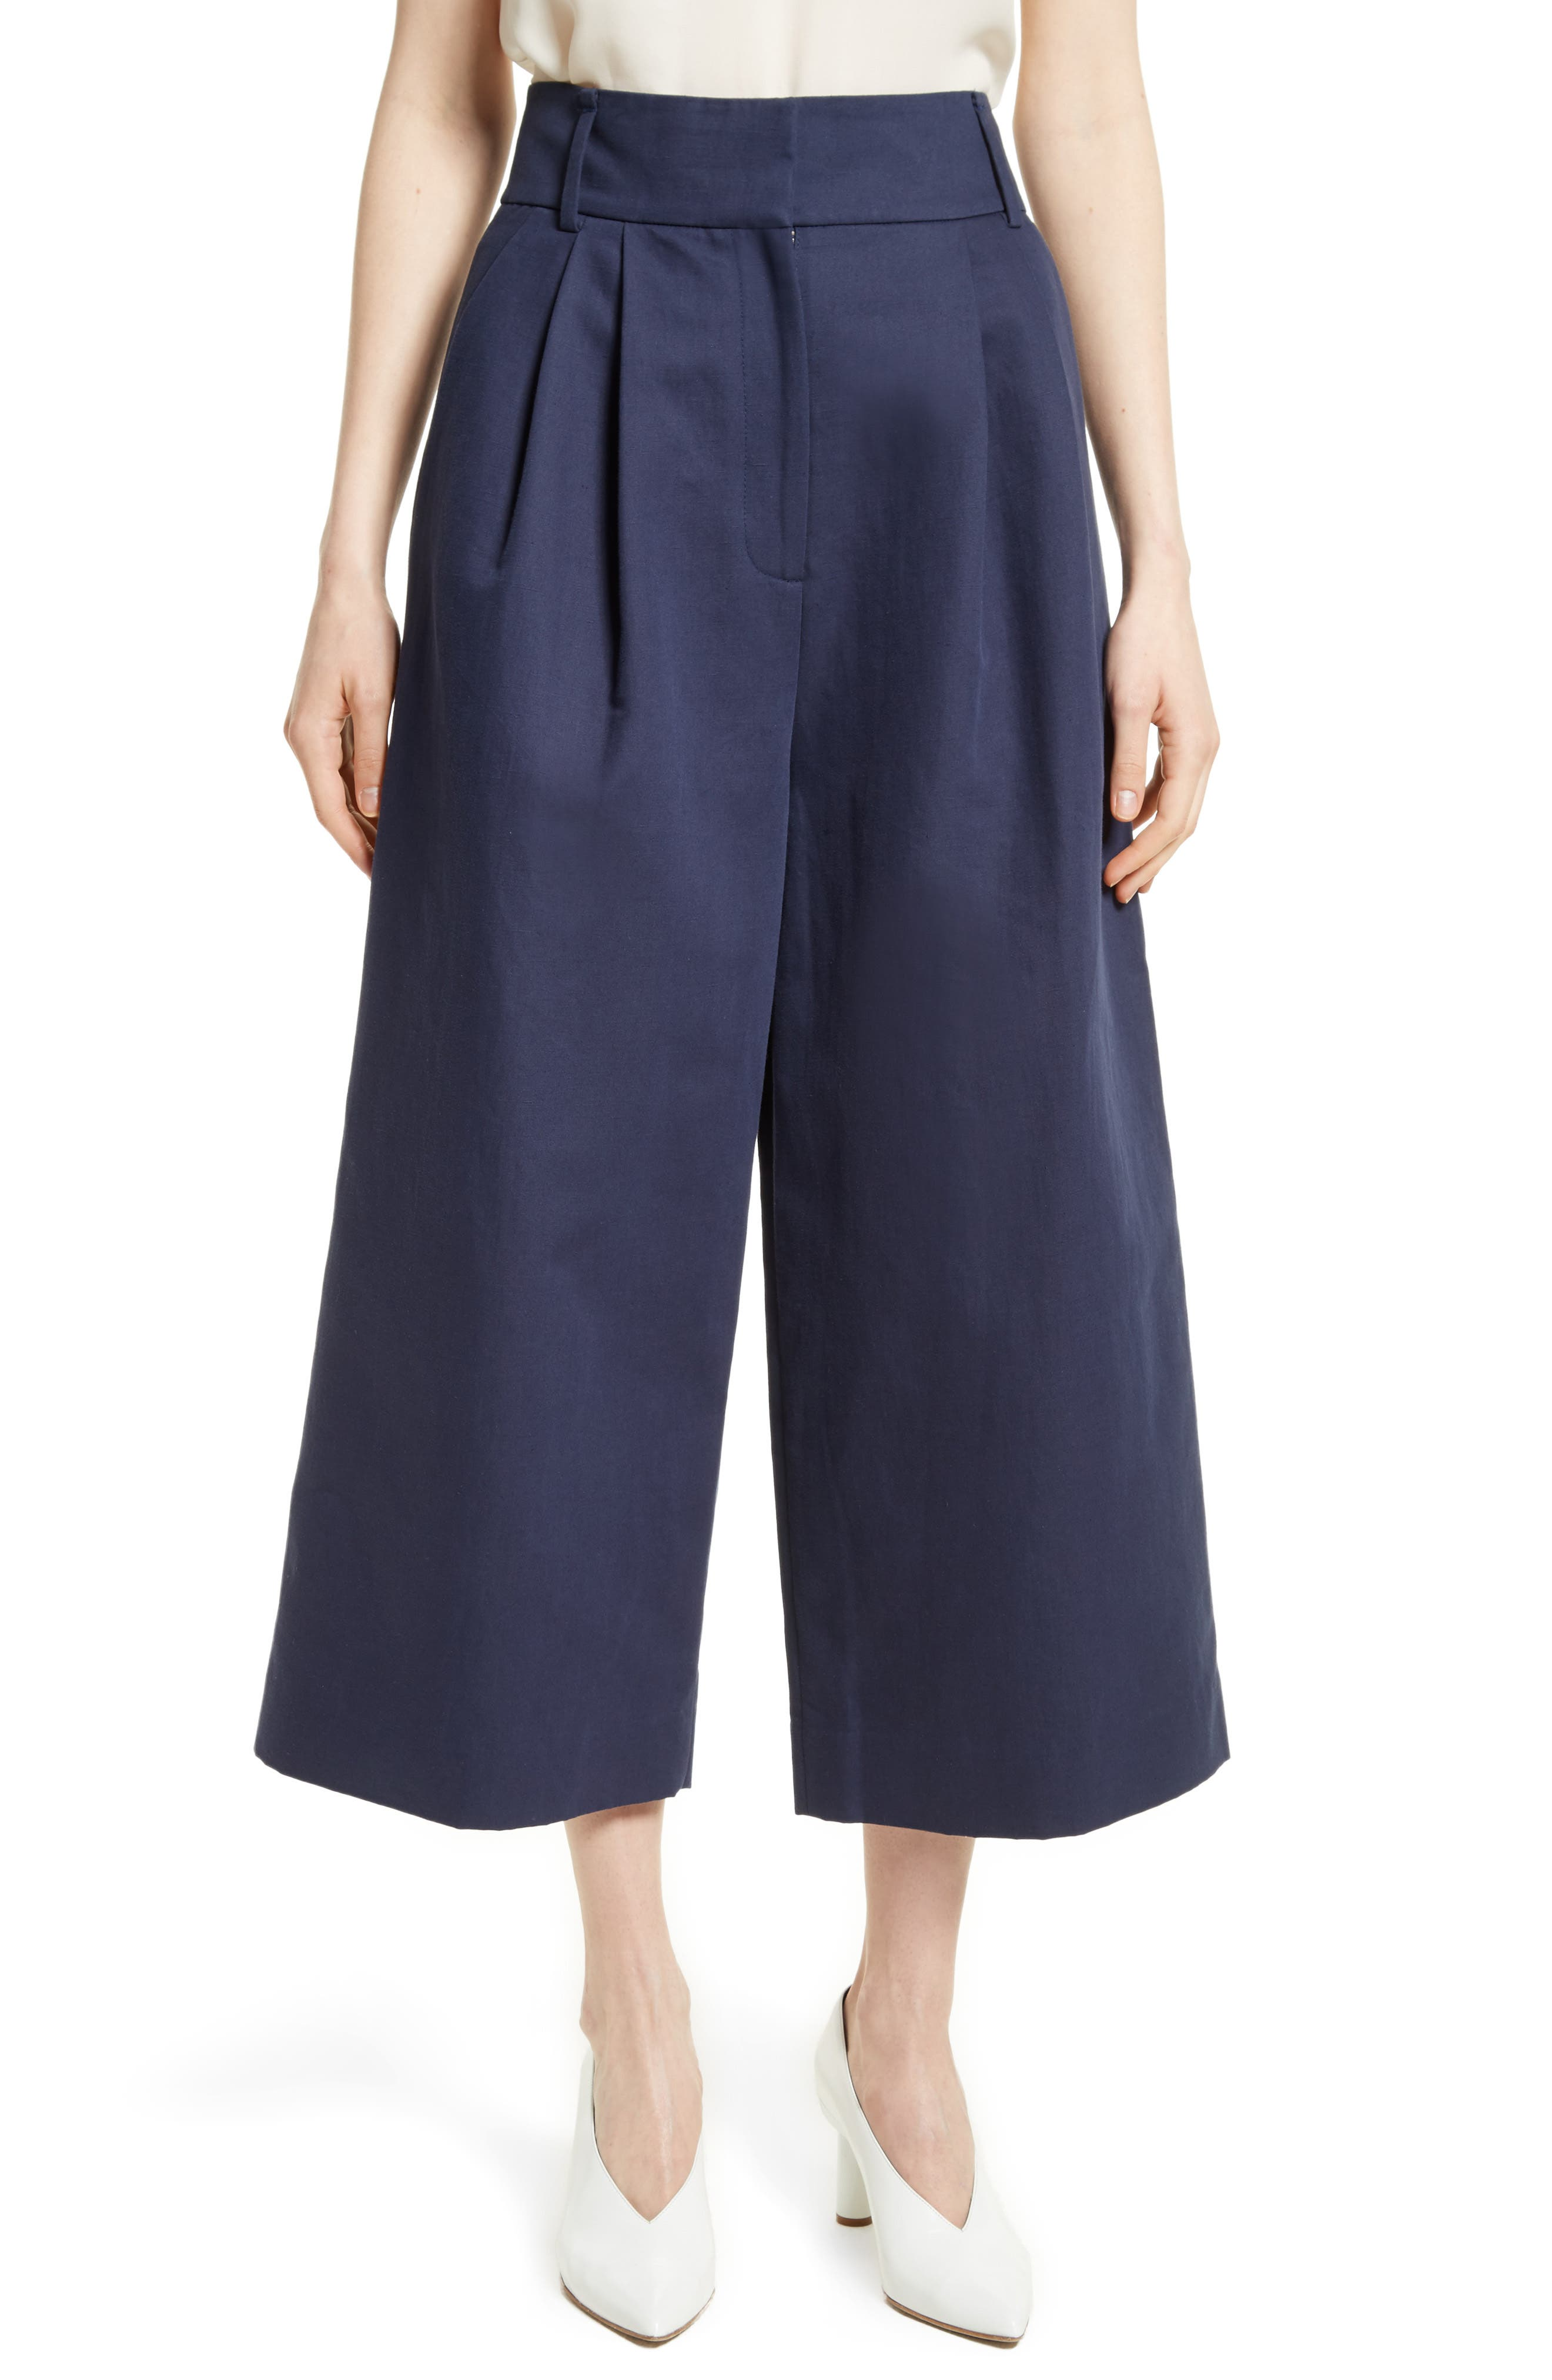 Tibi Chassis Plain Weave Crop Pants